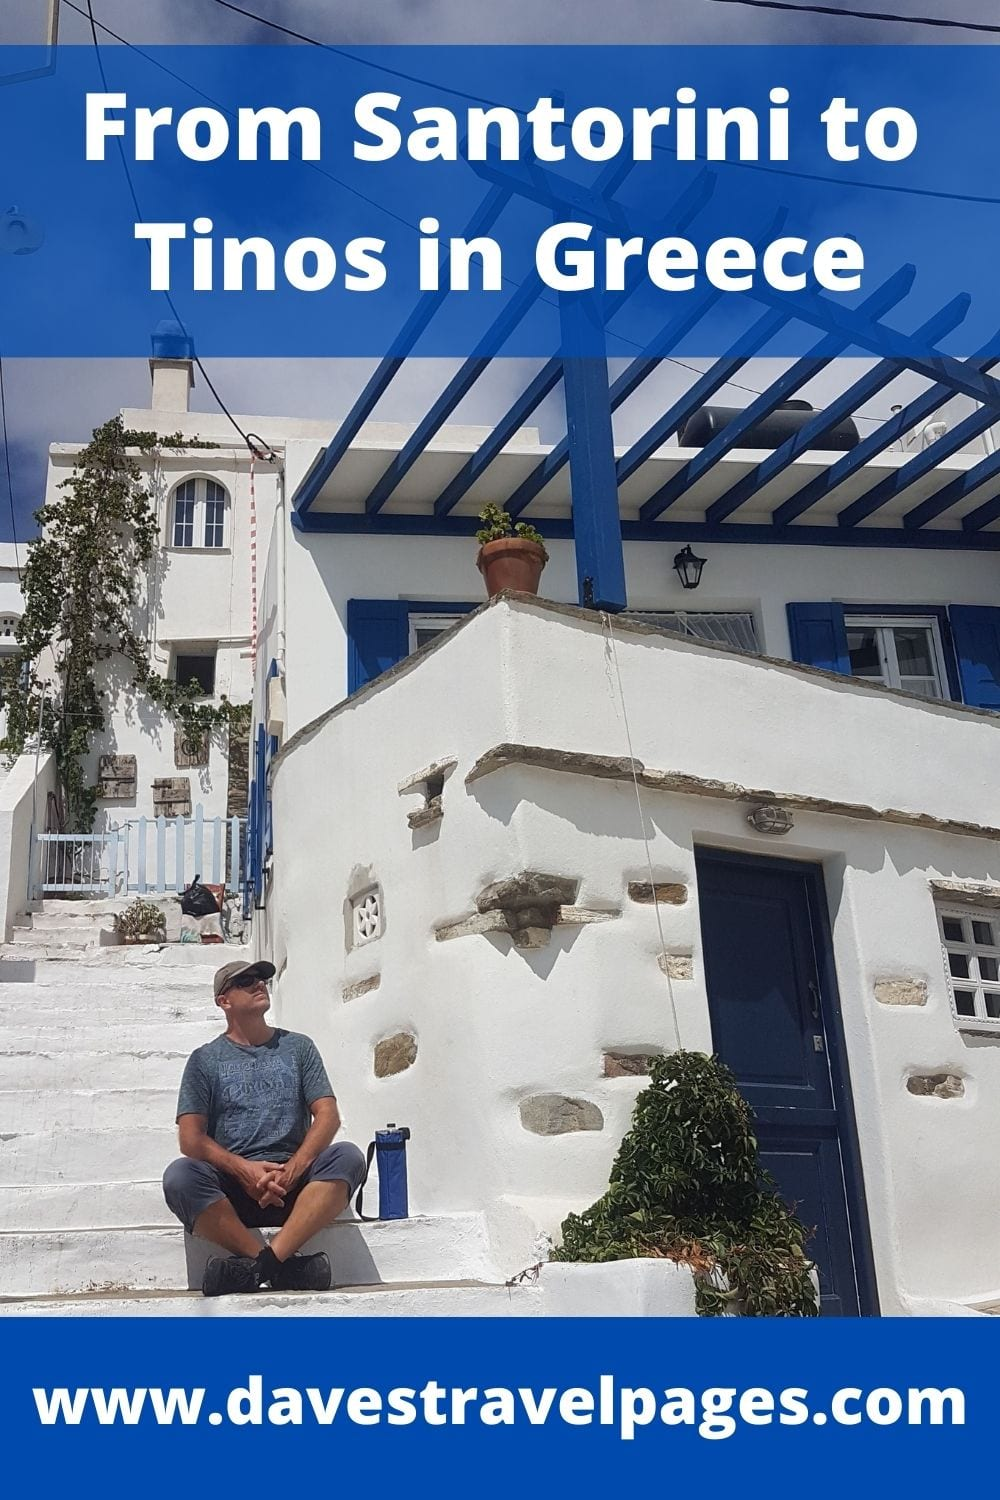 How to travel from Santorini to Tinos in Greece